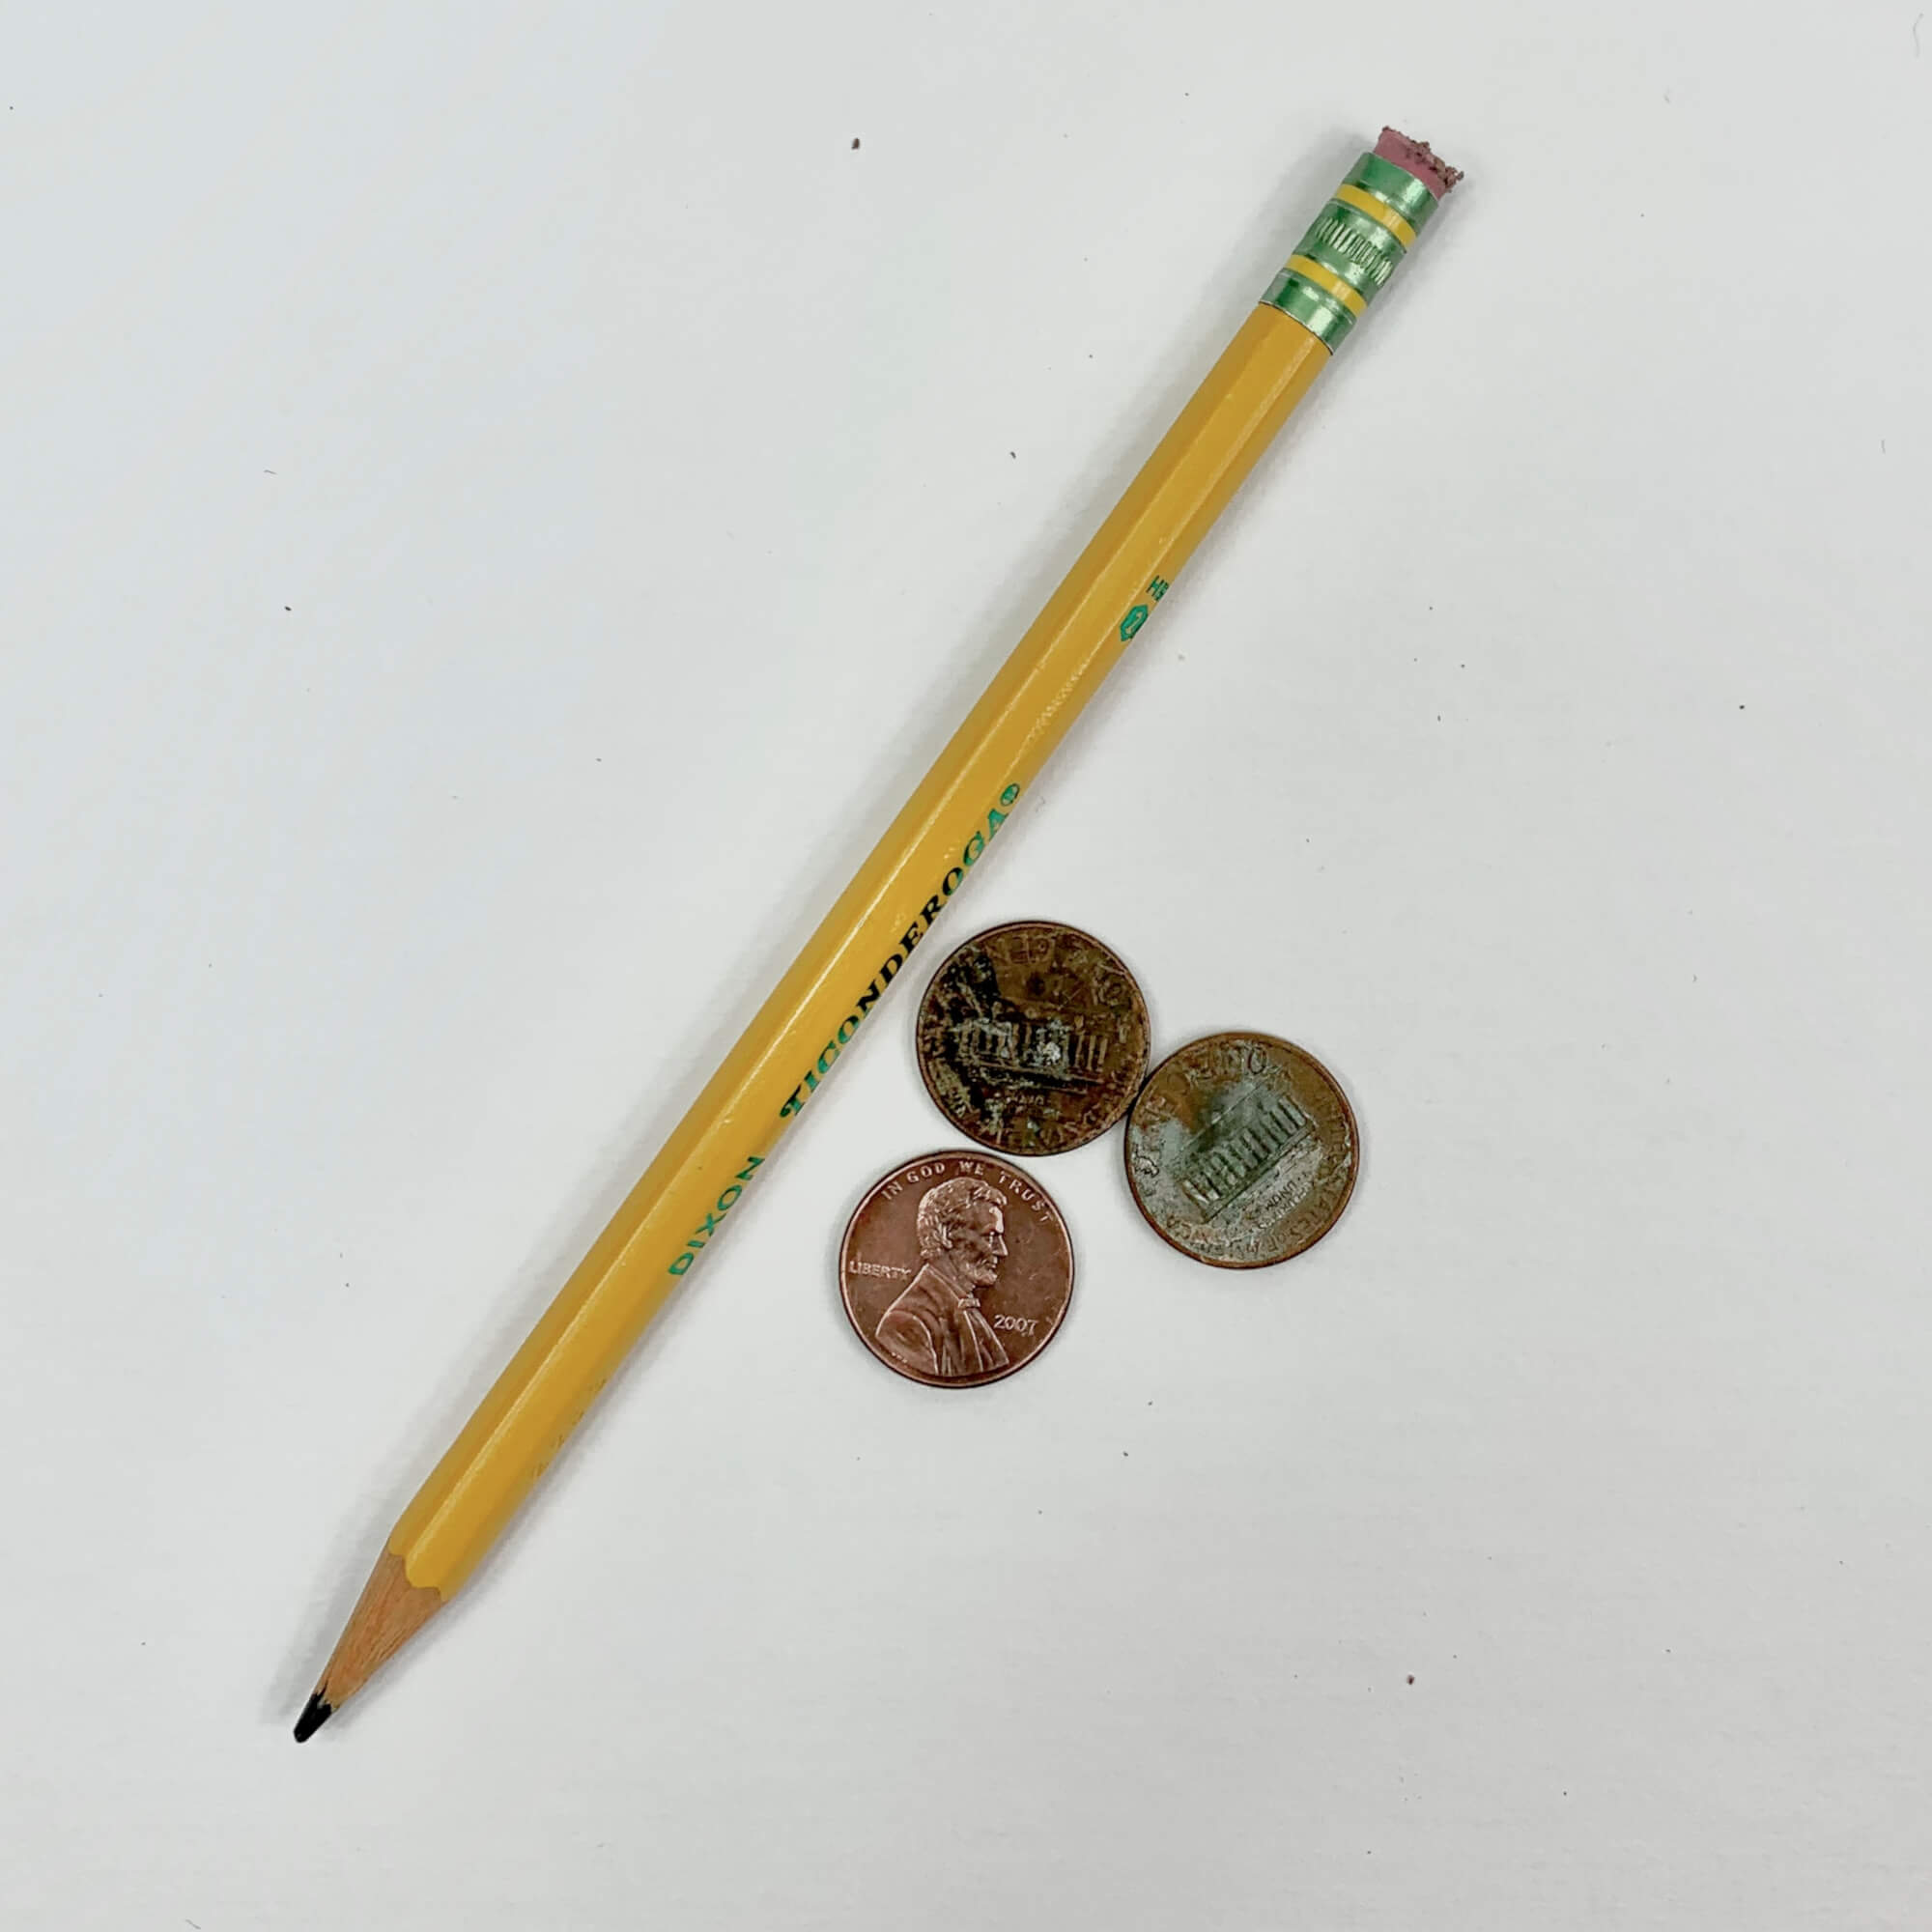 Polish Pennies with a Pencil